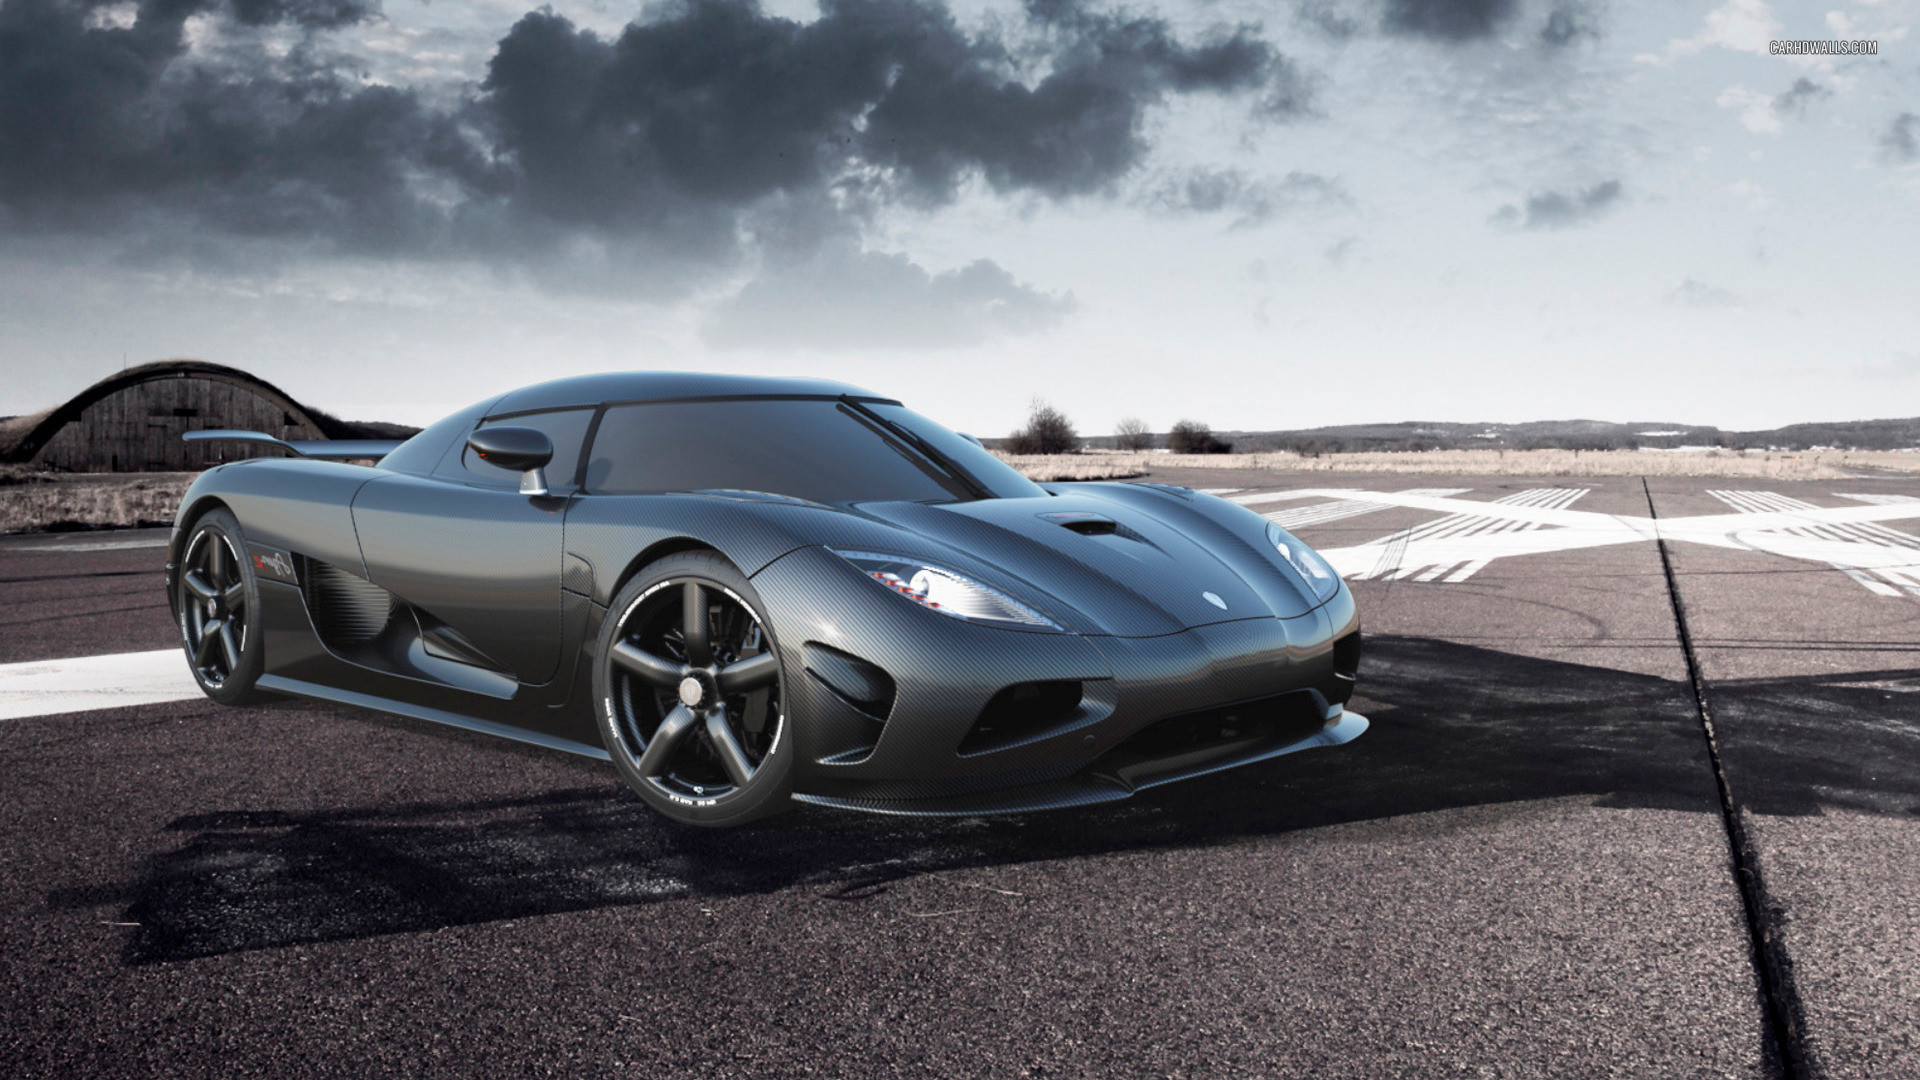 1920x1080 Nice Koenigsegg Agera R Background Desktop Wallpapers Hd 4k High Definition Windows 10 Colourful Images Download Wallpaper Free 1920A 1080